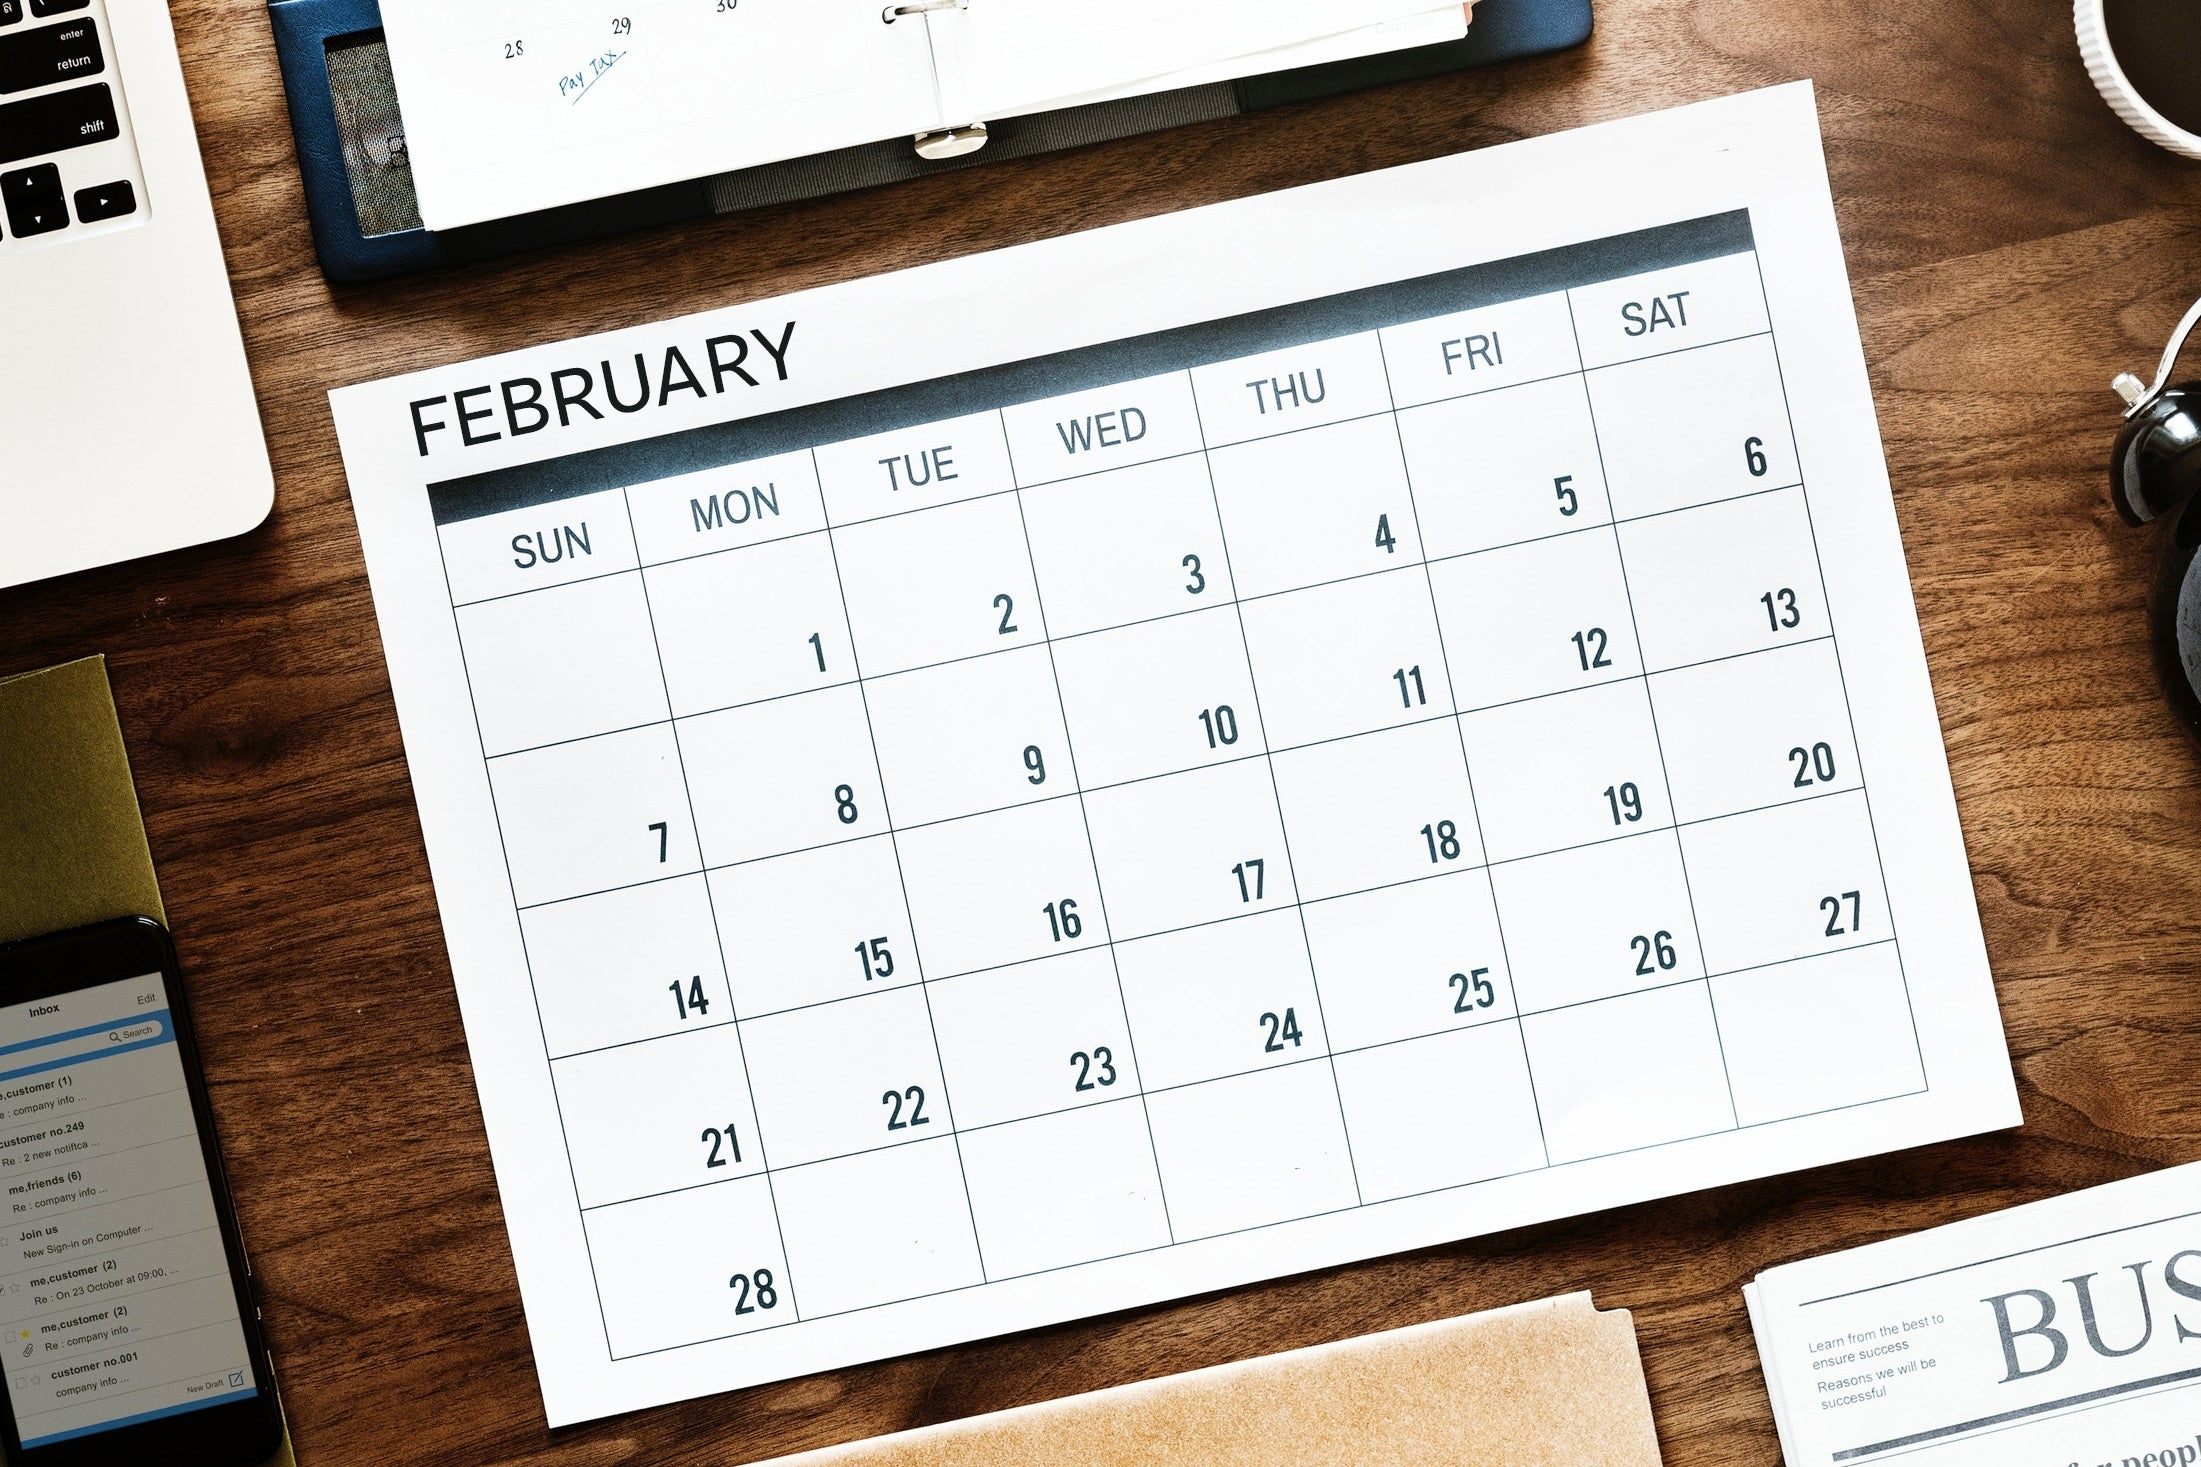 Why Are There 28 Days In February?